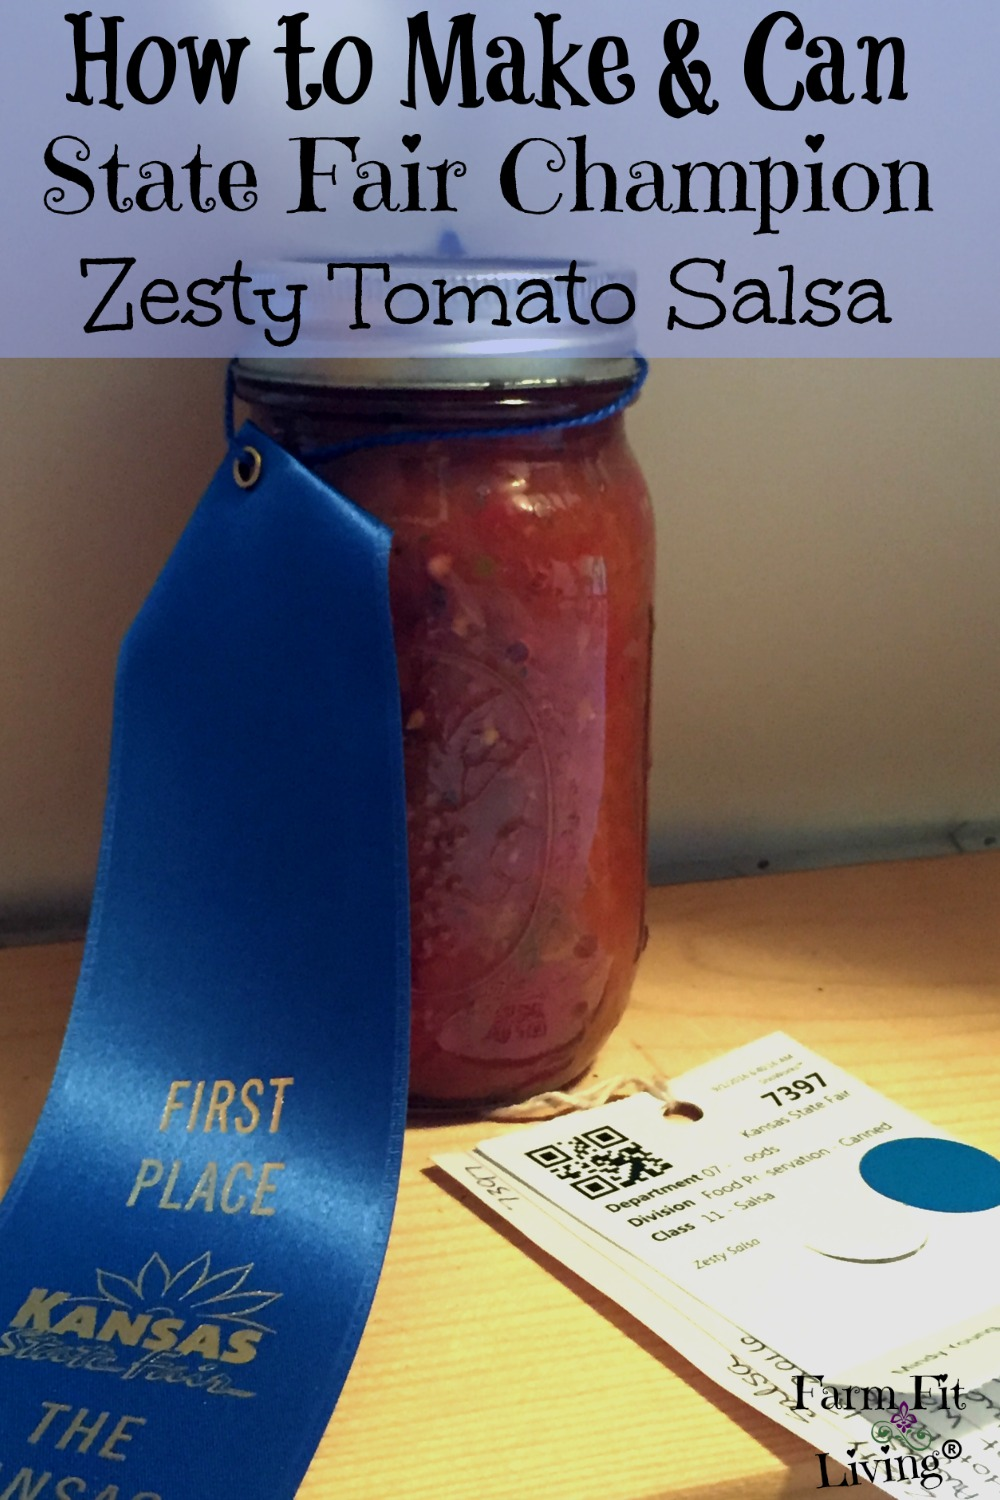 State Fair Champion Zesty Tomato Salsa